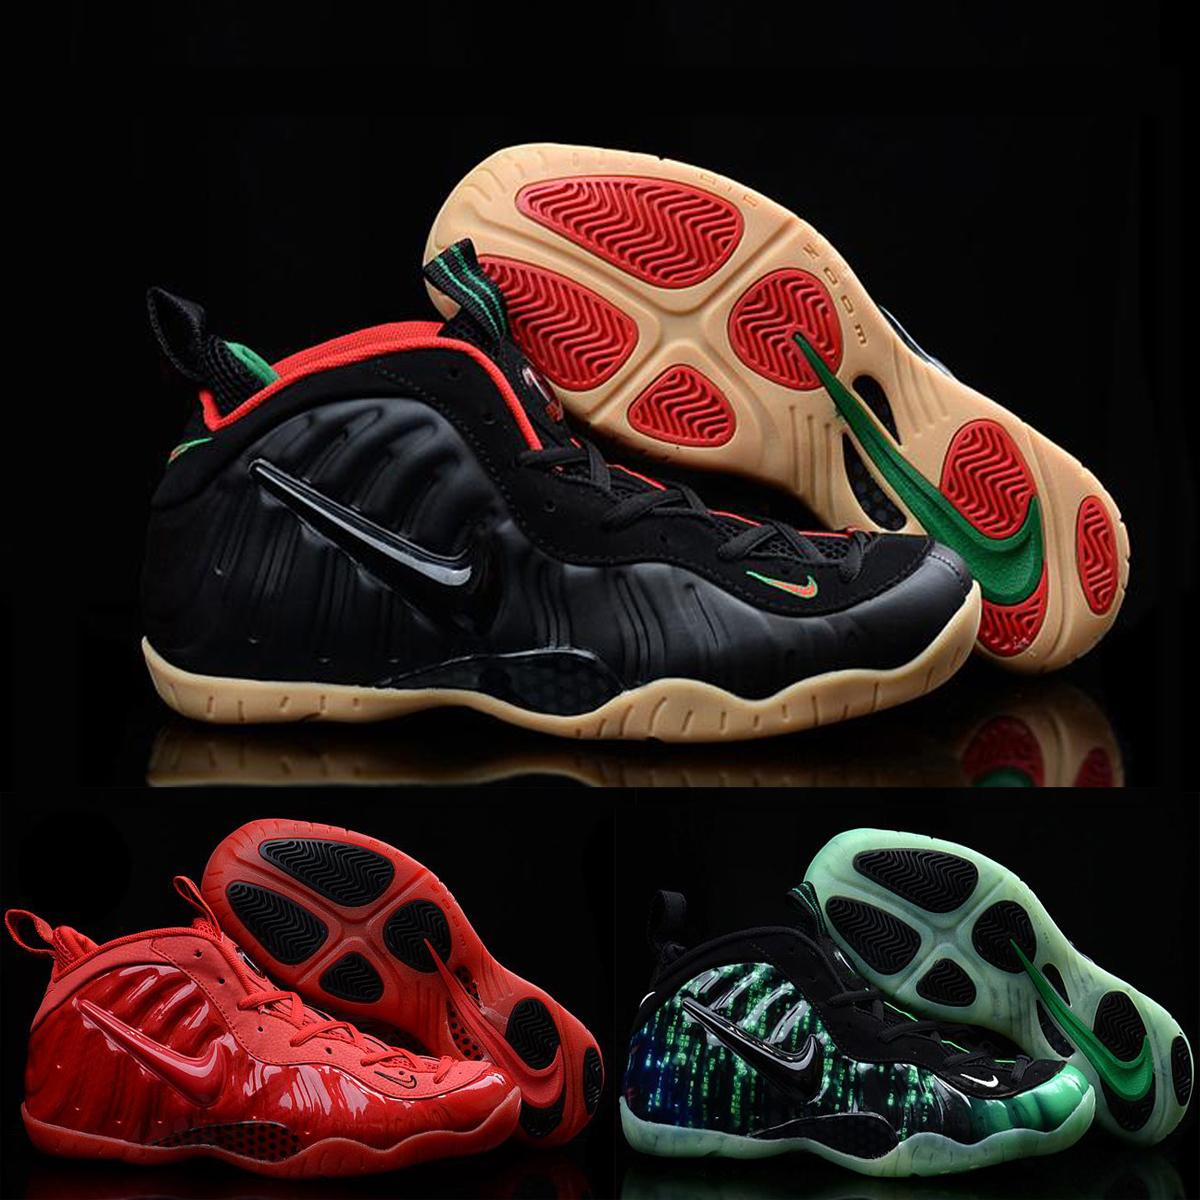 Nike Air Foamposite Pro Penny Hardaway Mens Basketball Shoes Black Green  Red White Original Air Foamposite One Shoes For Men Neakers Basketball  Games Tennis ...